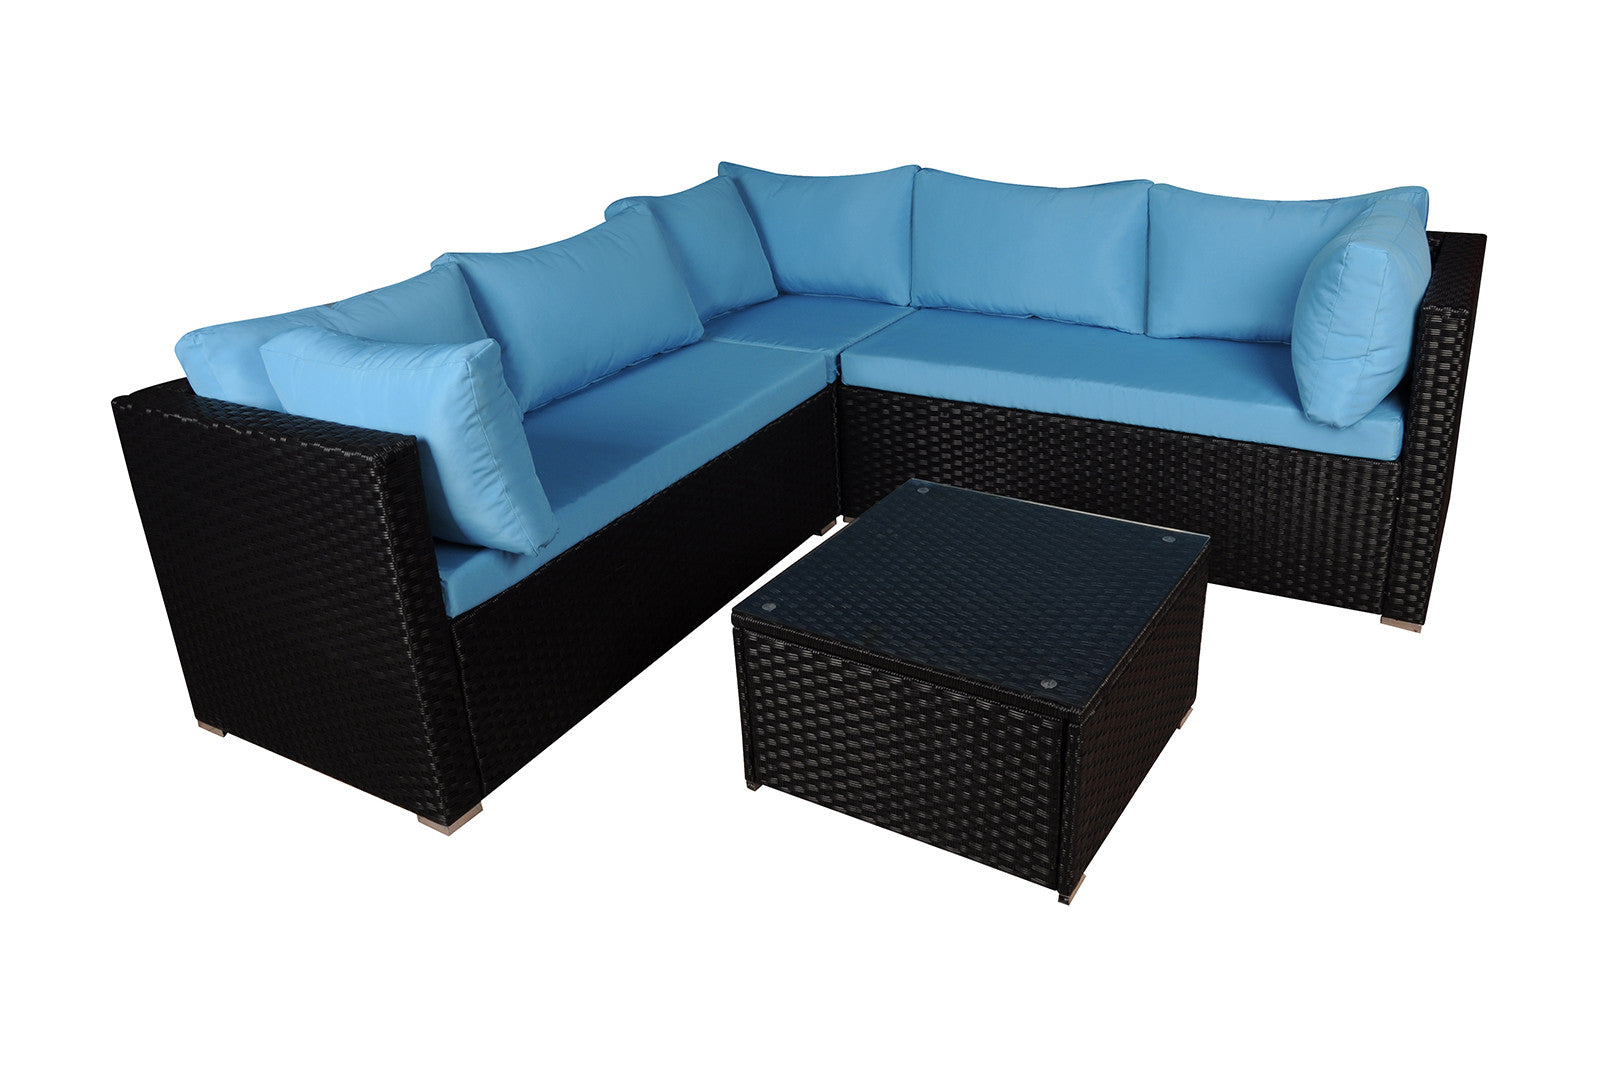 Kailua 4PC Modern Rattan Outdoor Set Sofamaniacom : RTN23 BL from www.sofamania.com size 1600 x 1067 jpeg 149kB